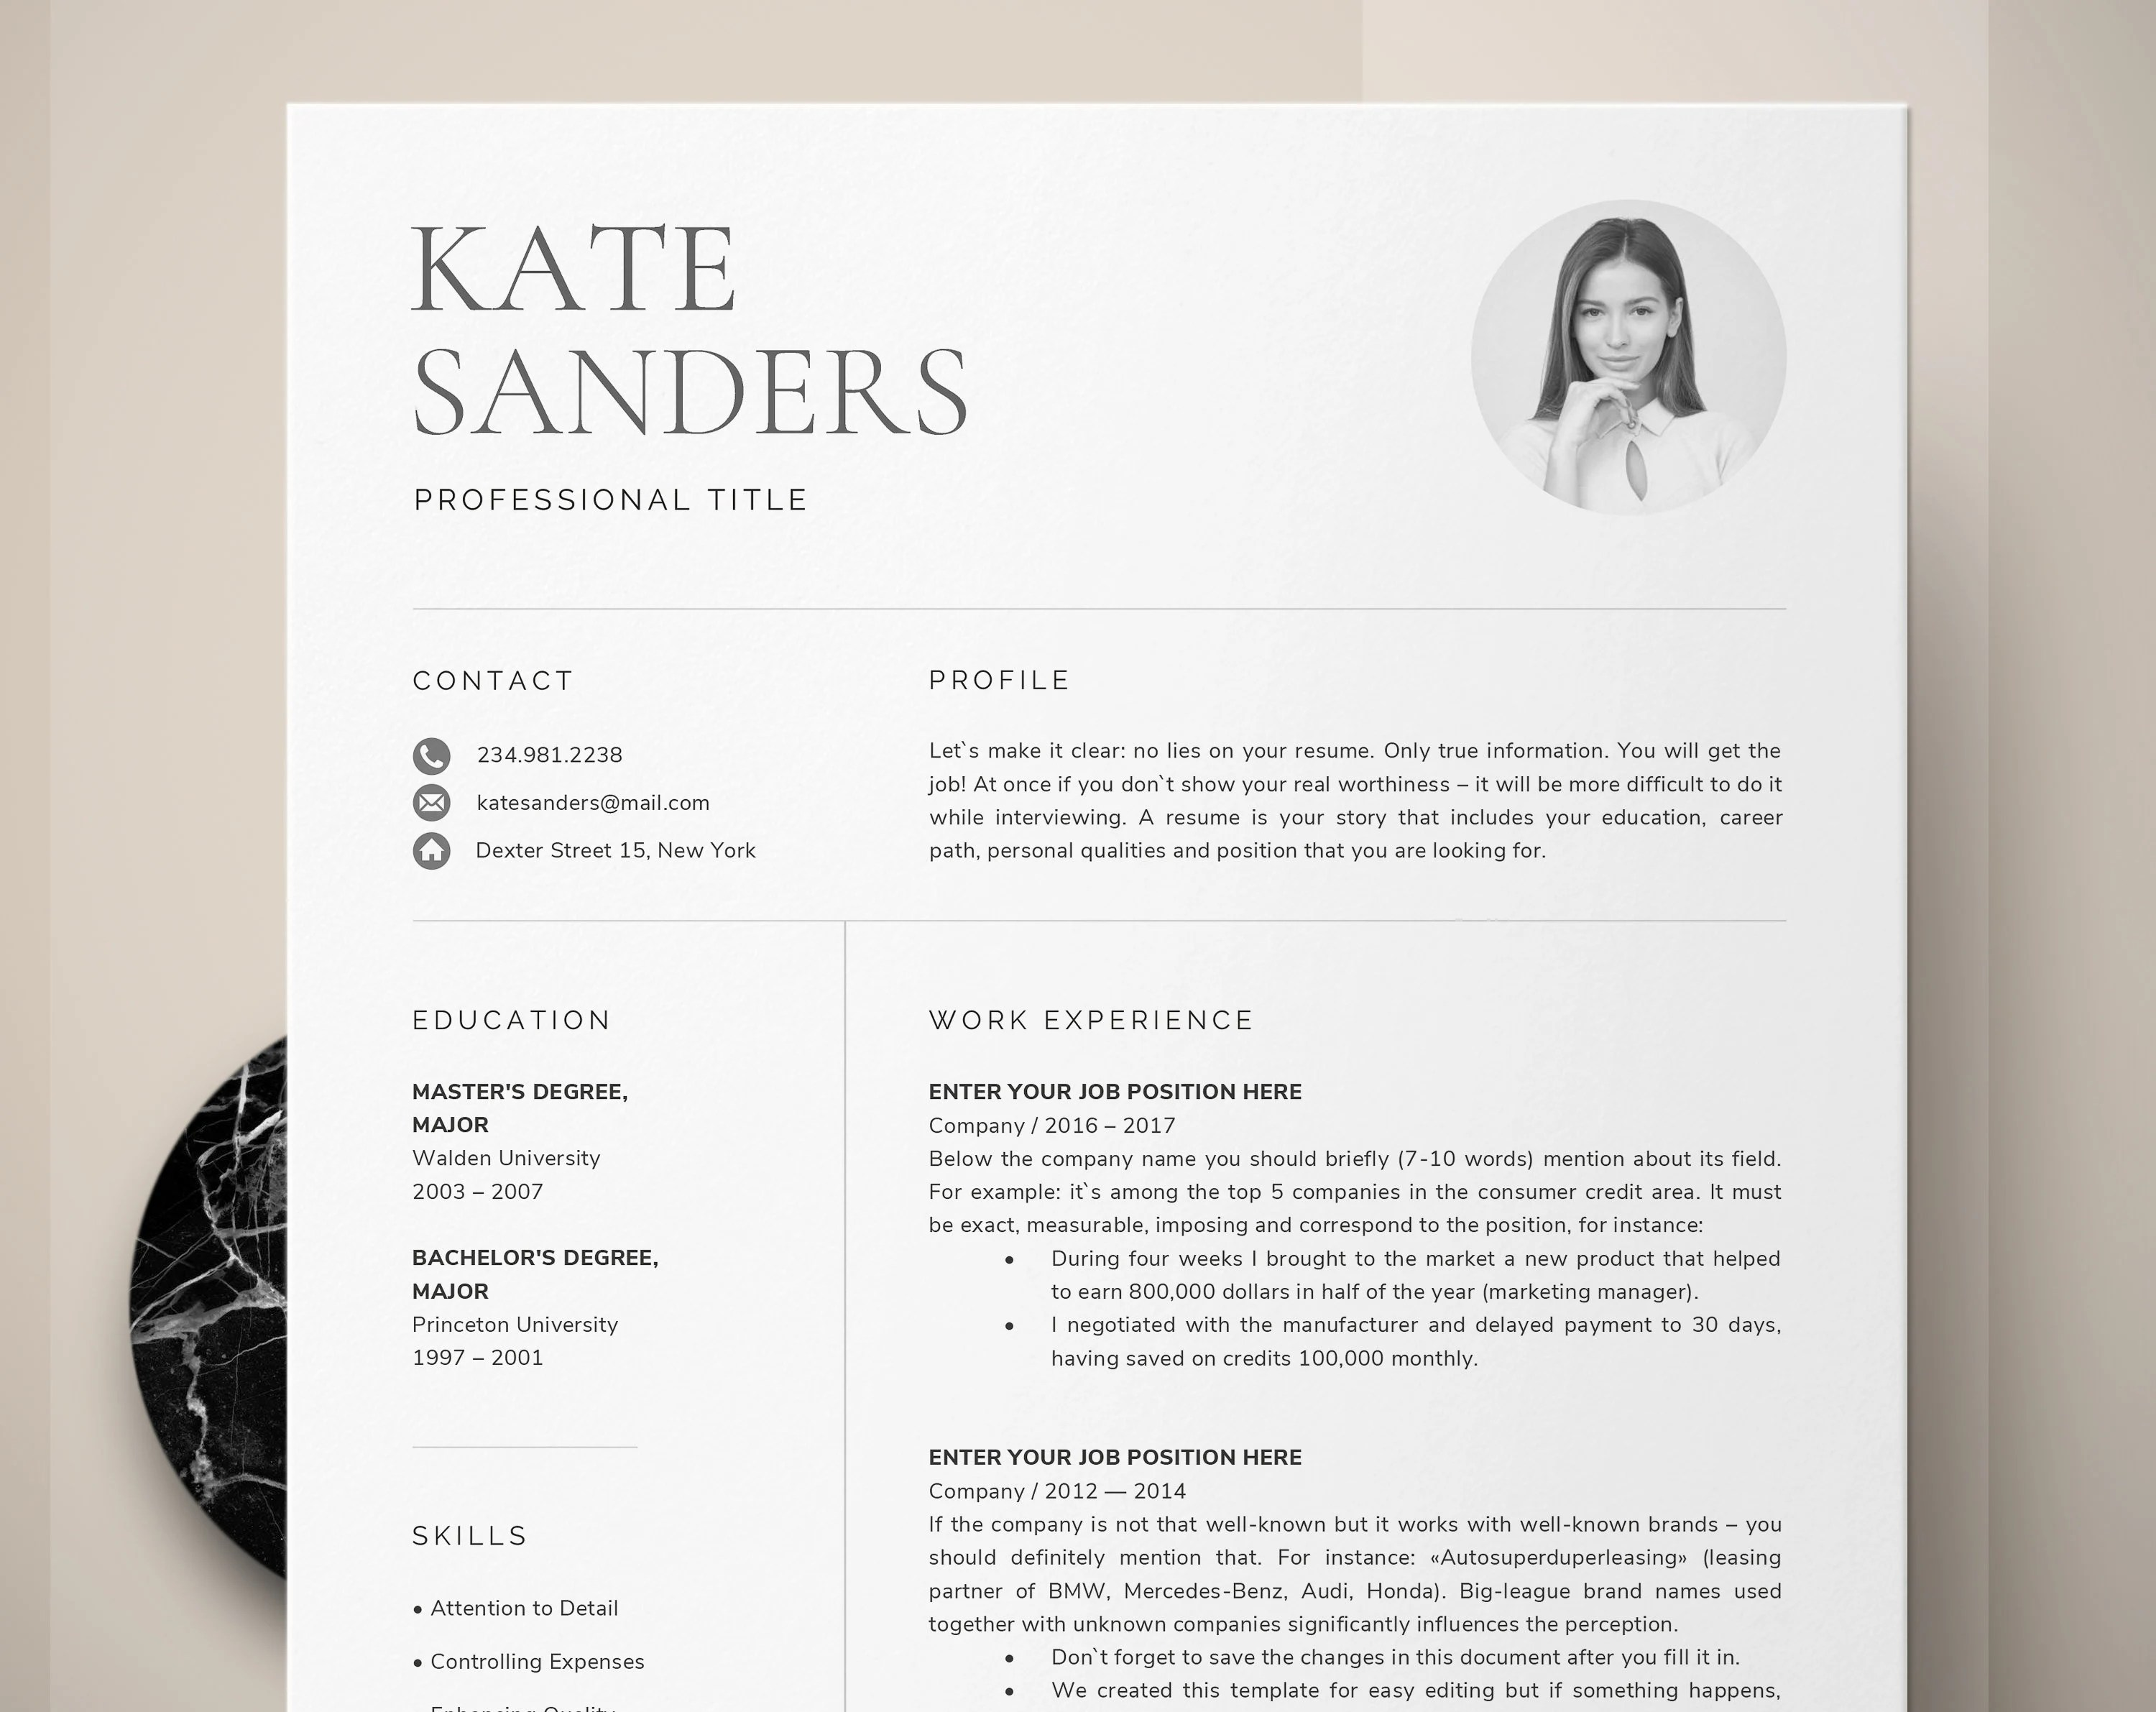 CV Template Resume Template with Photo Professional Resume Etsy